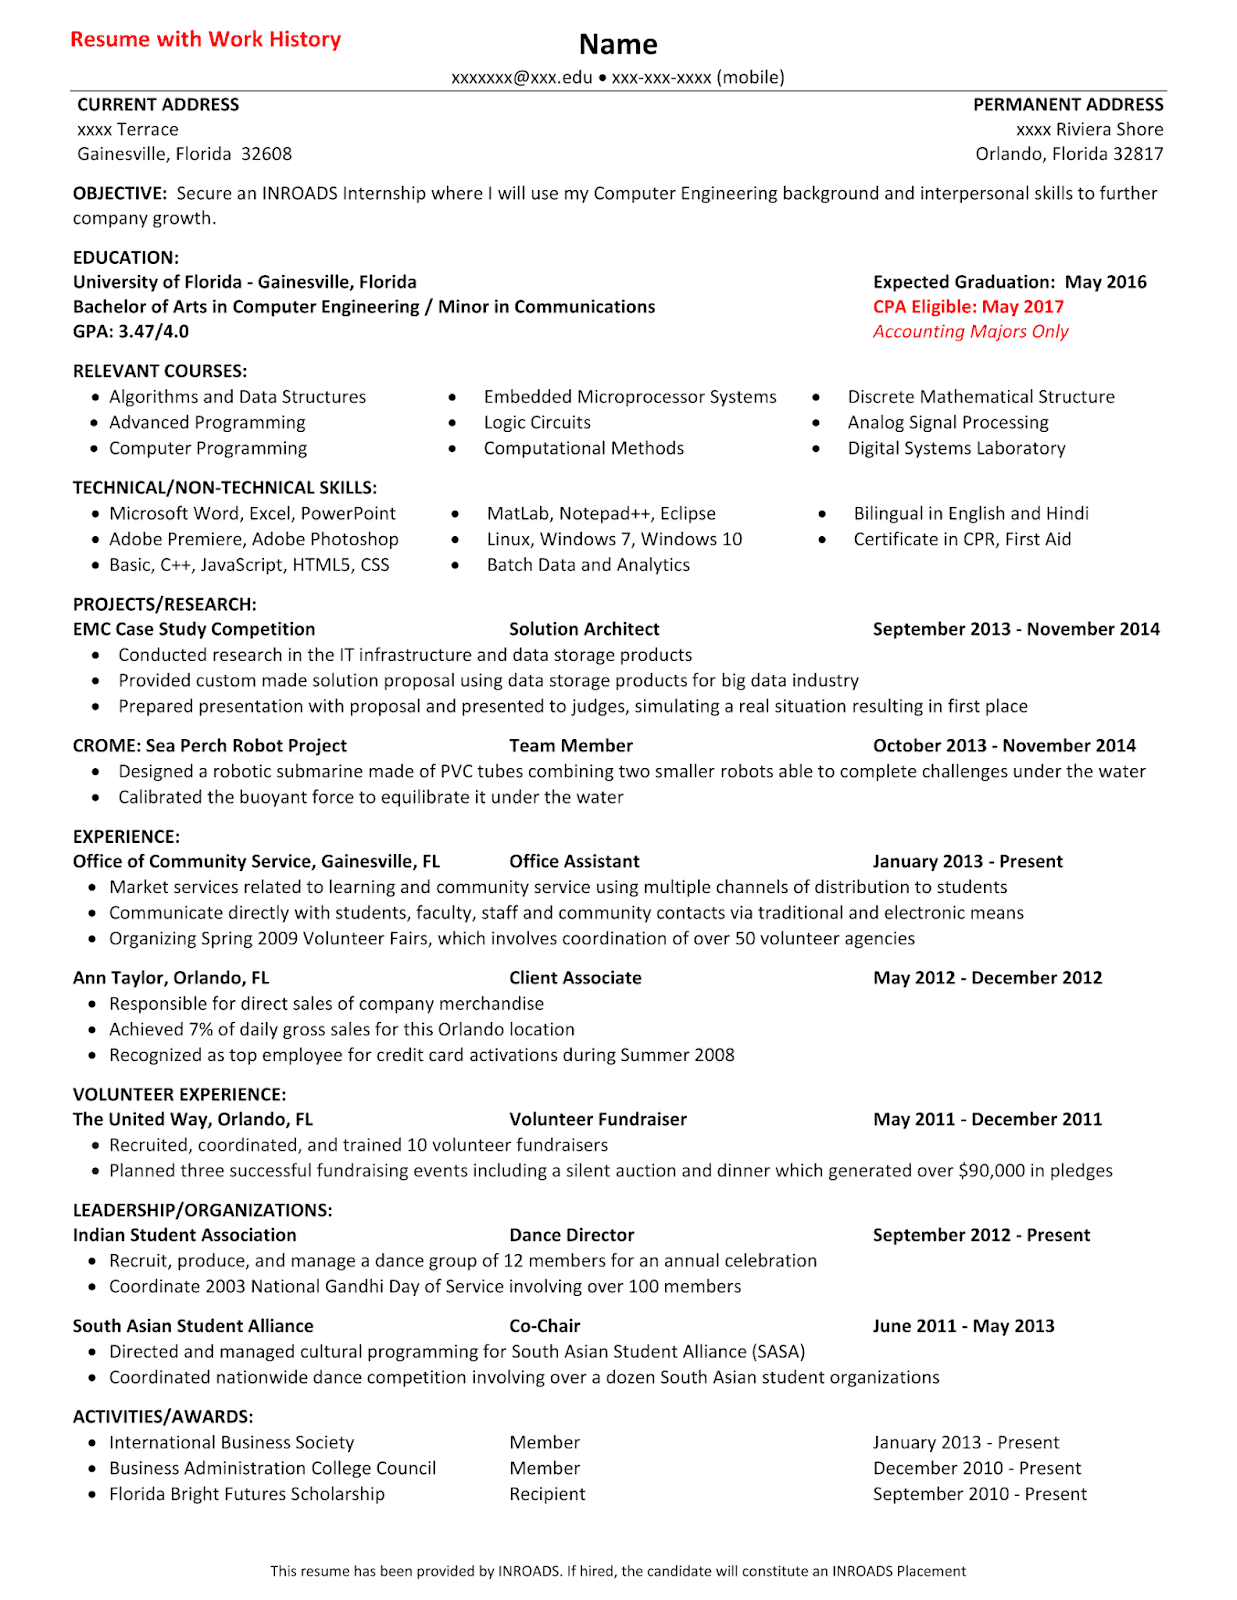 Below Are The Helpful Resume Templates From INROADS